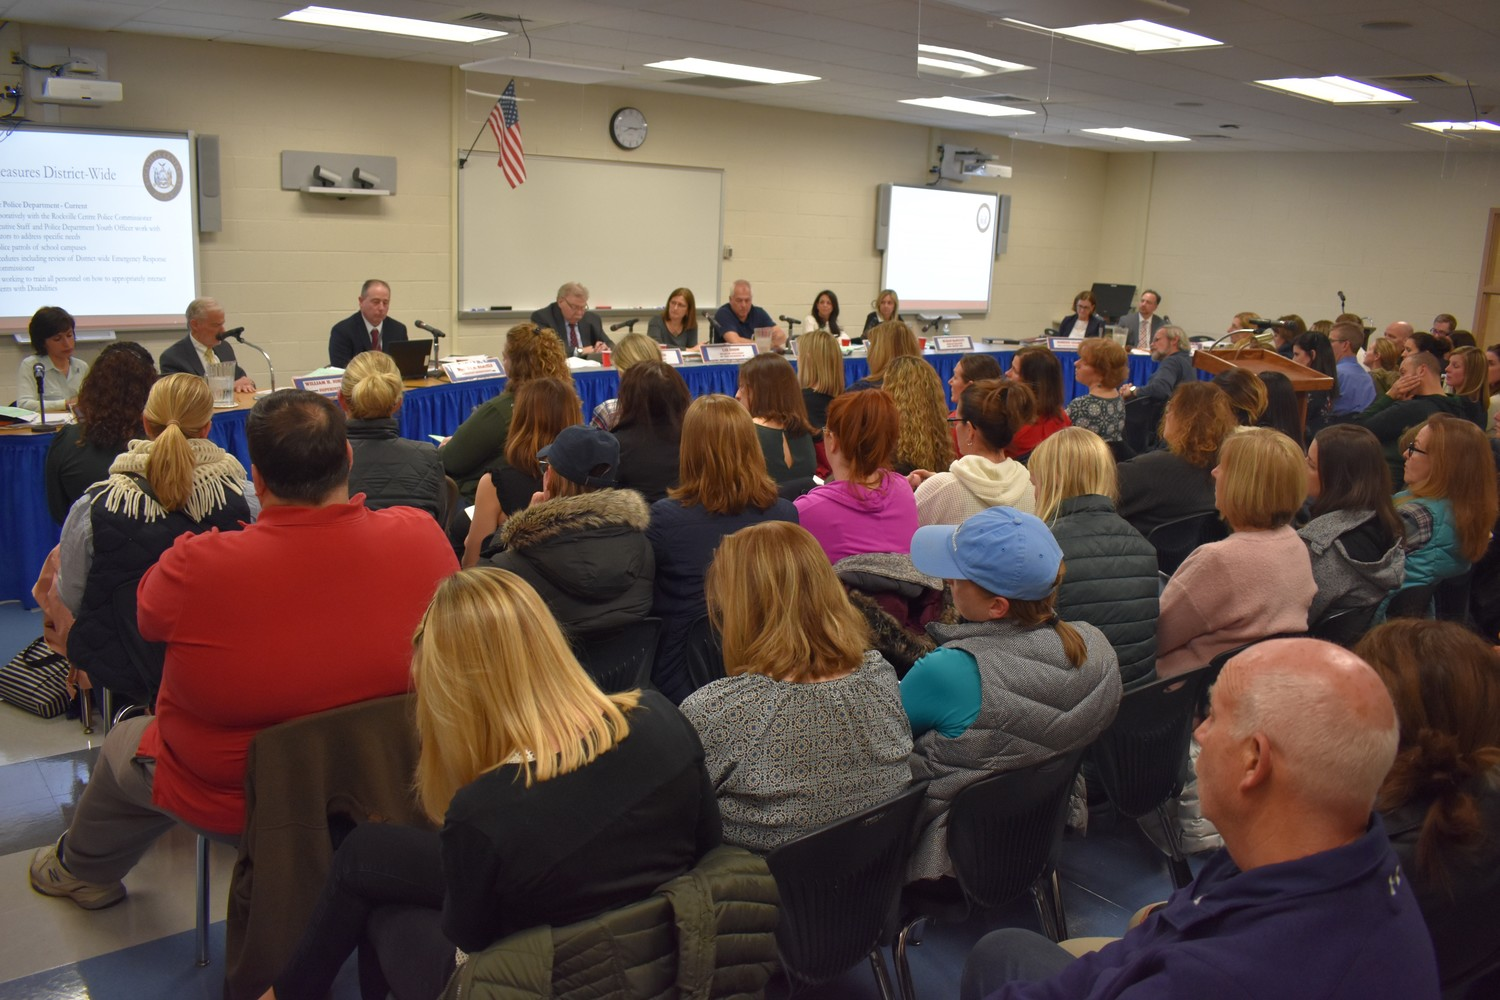 About 100 people packed into South Side High School's common room on Feb. 28 for a Board of Education meeting that focused on existing safety measures and future security enhancements.